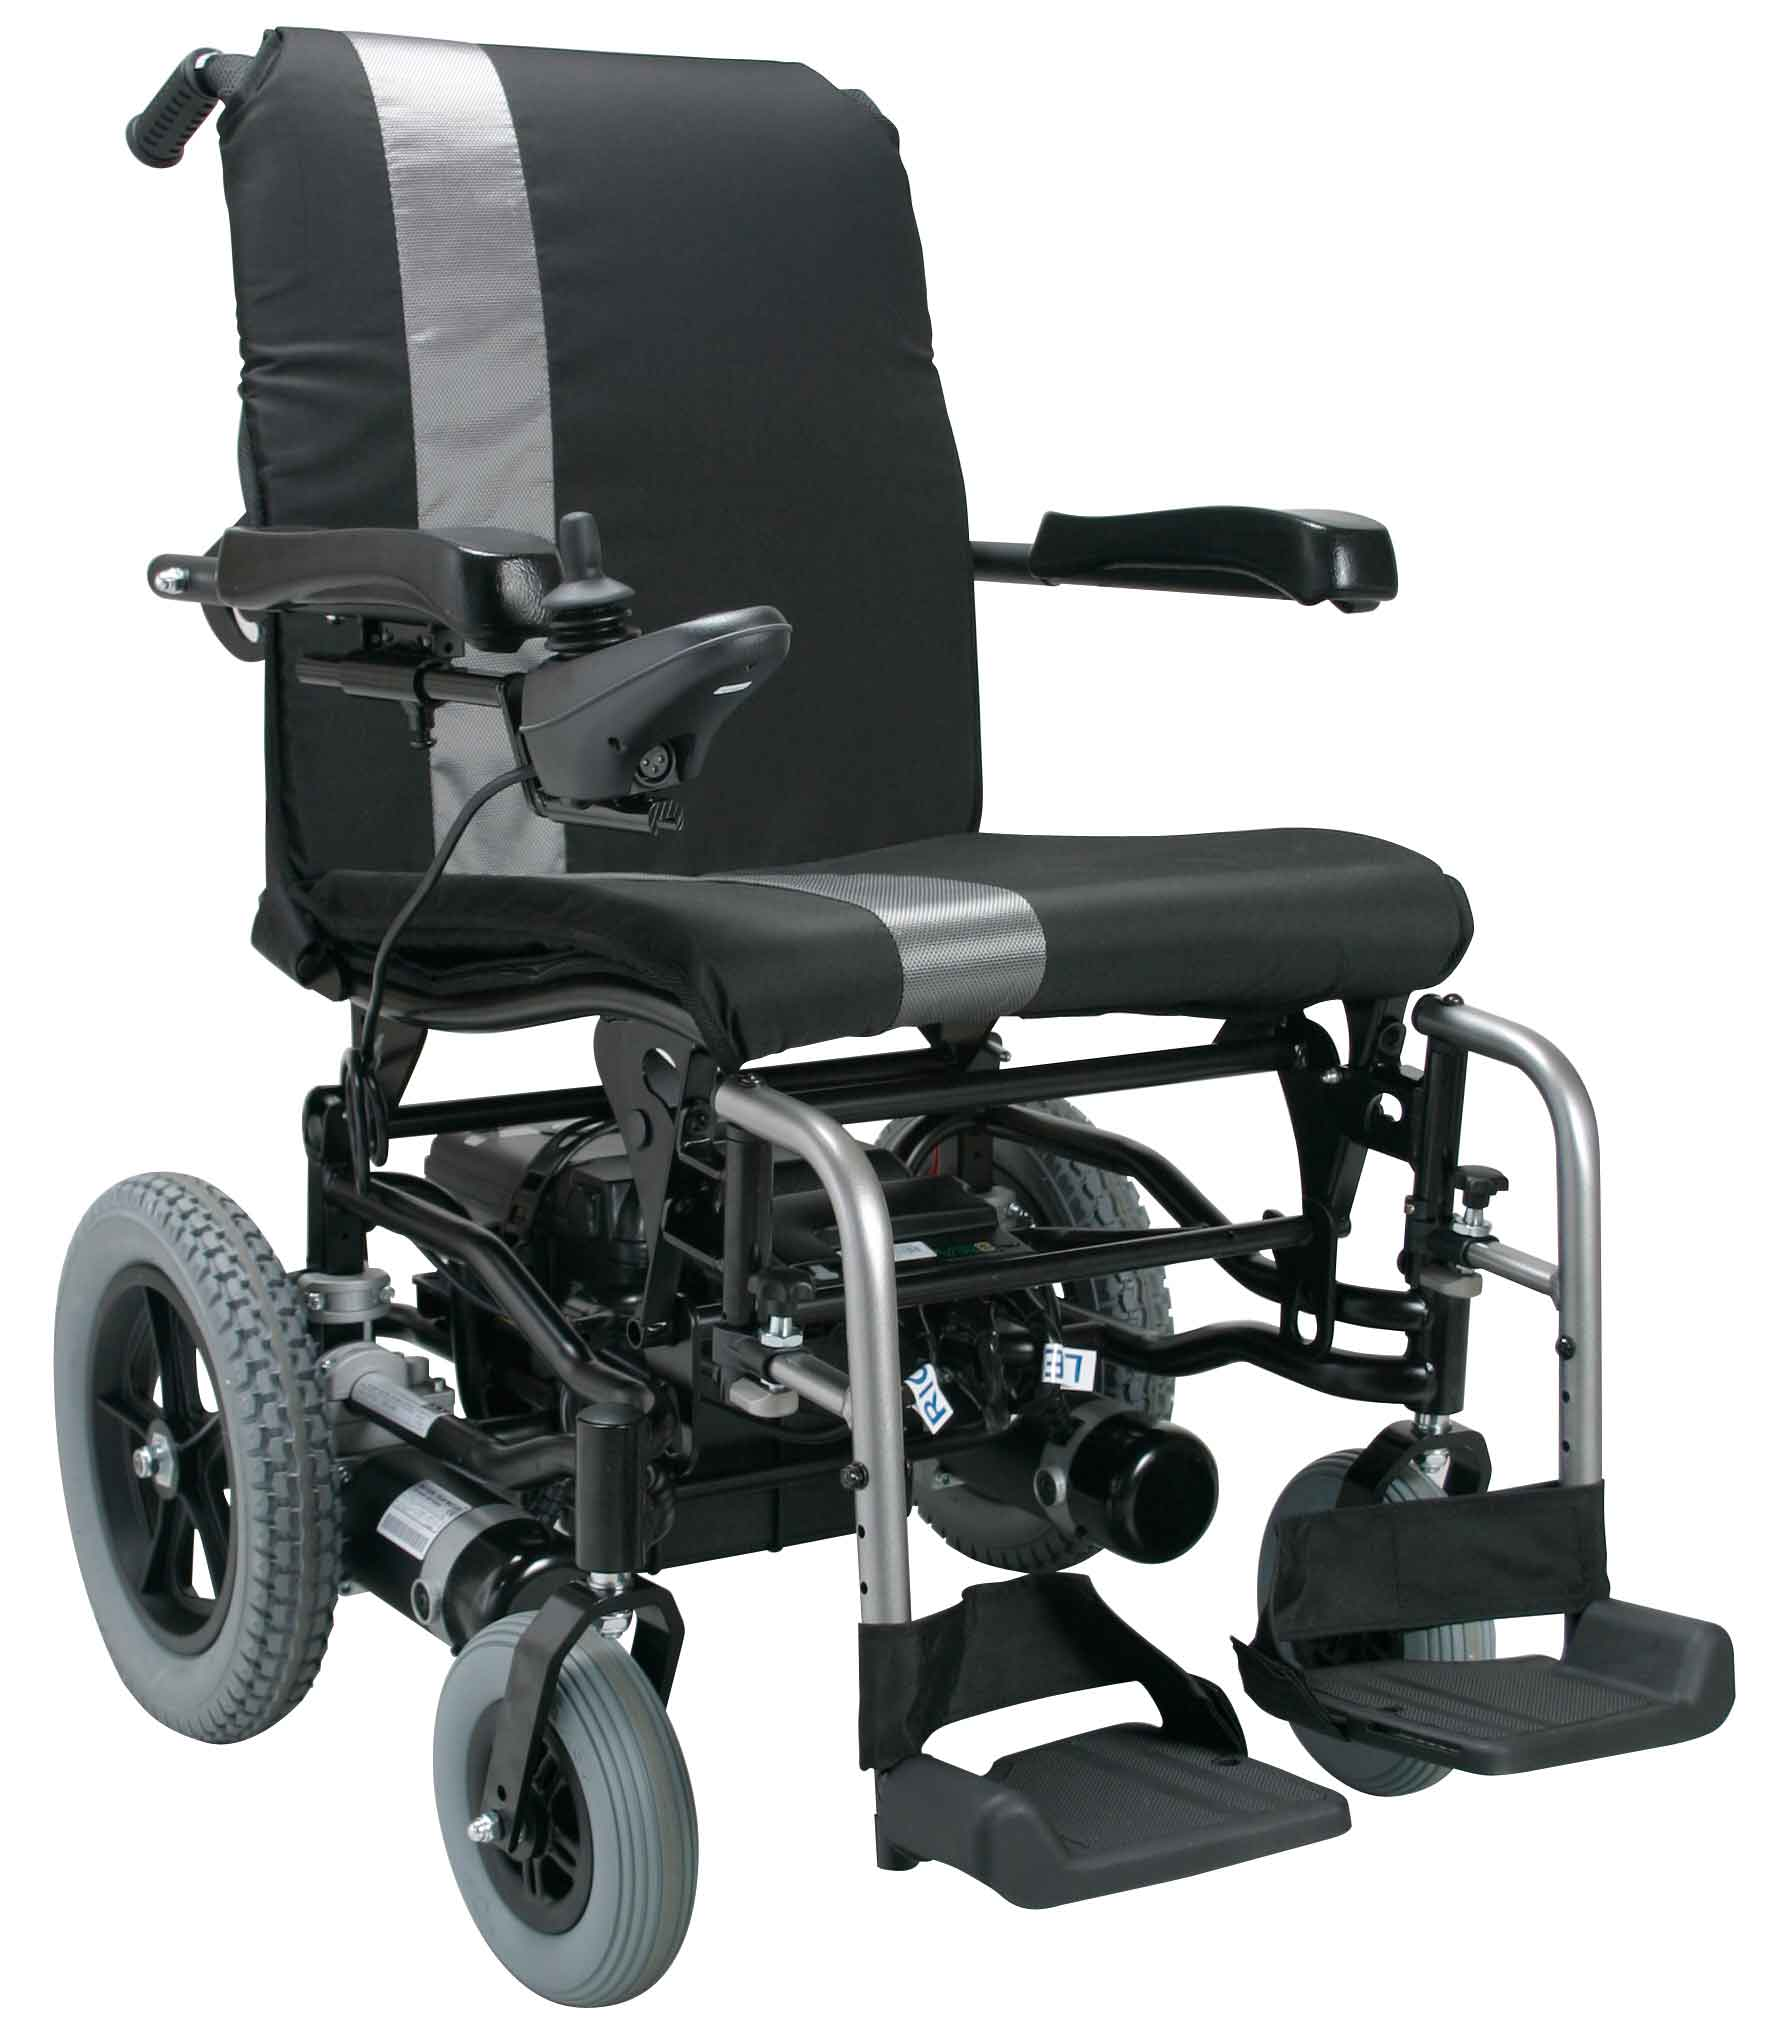 Please help – I need an electric wheelchair